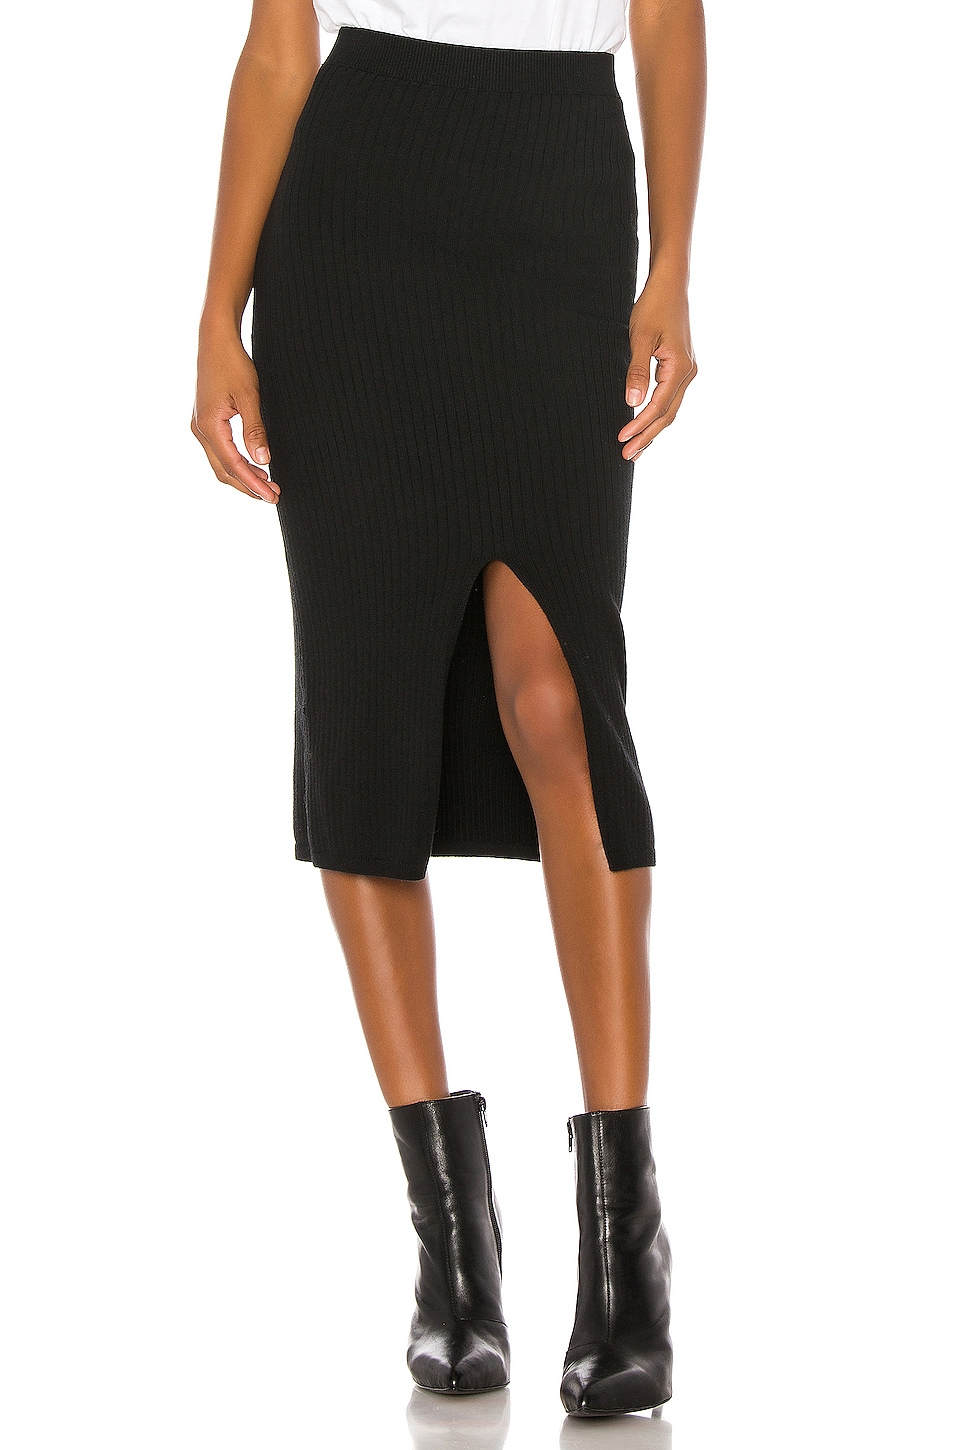 Skyline Midi Skirt                   Free People                                                                                                                             CA$ 65.39 8